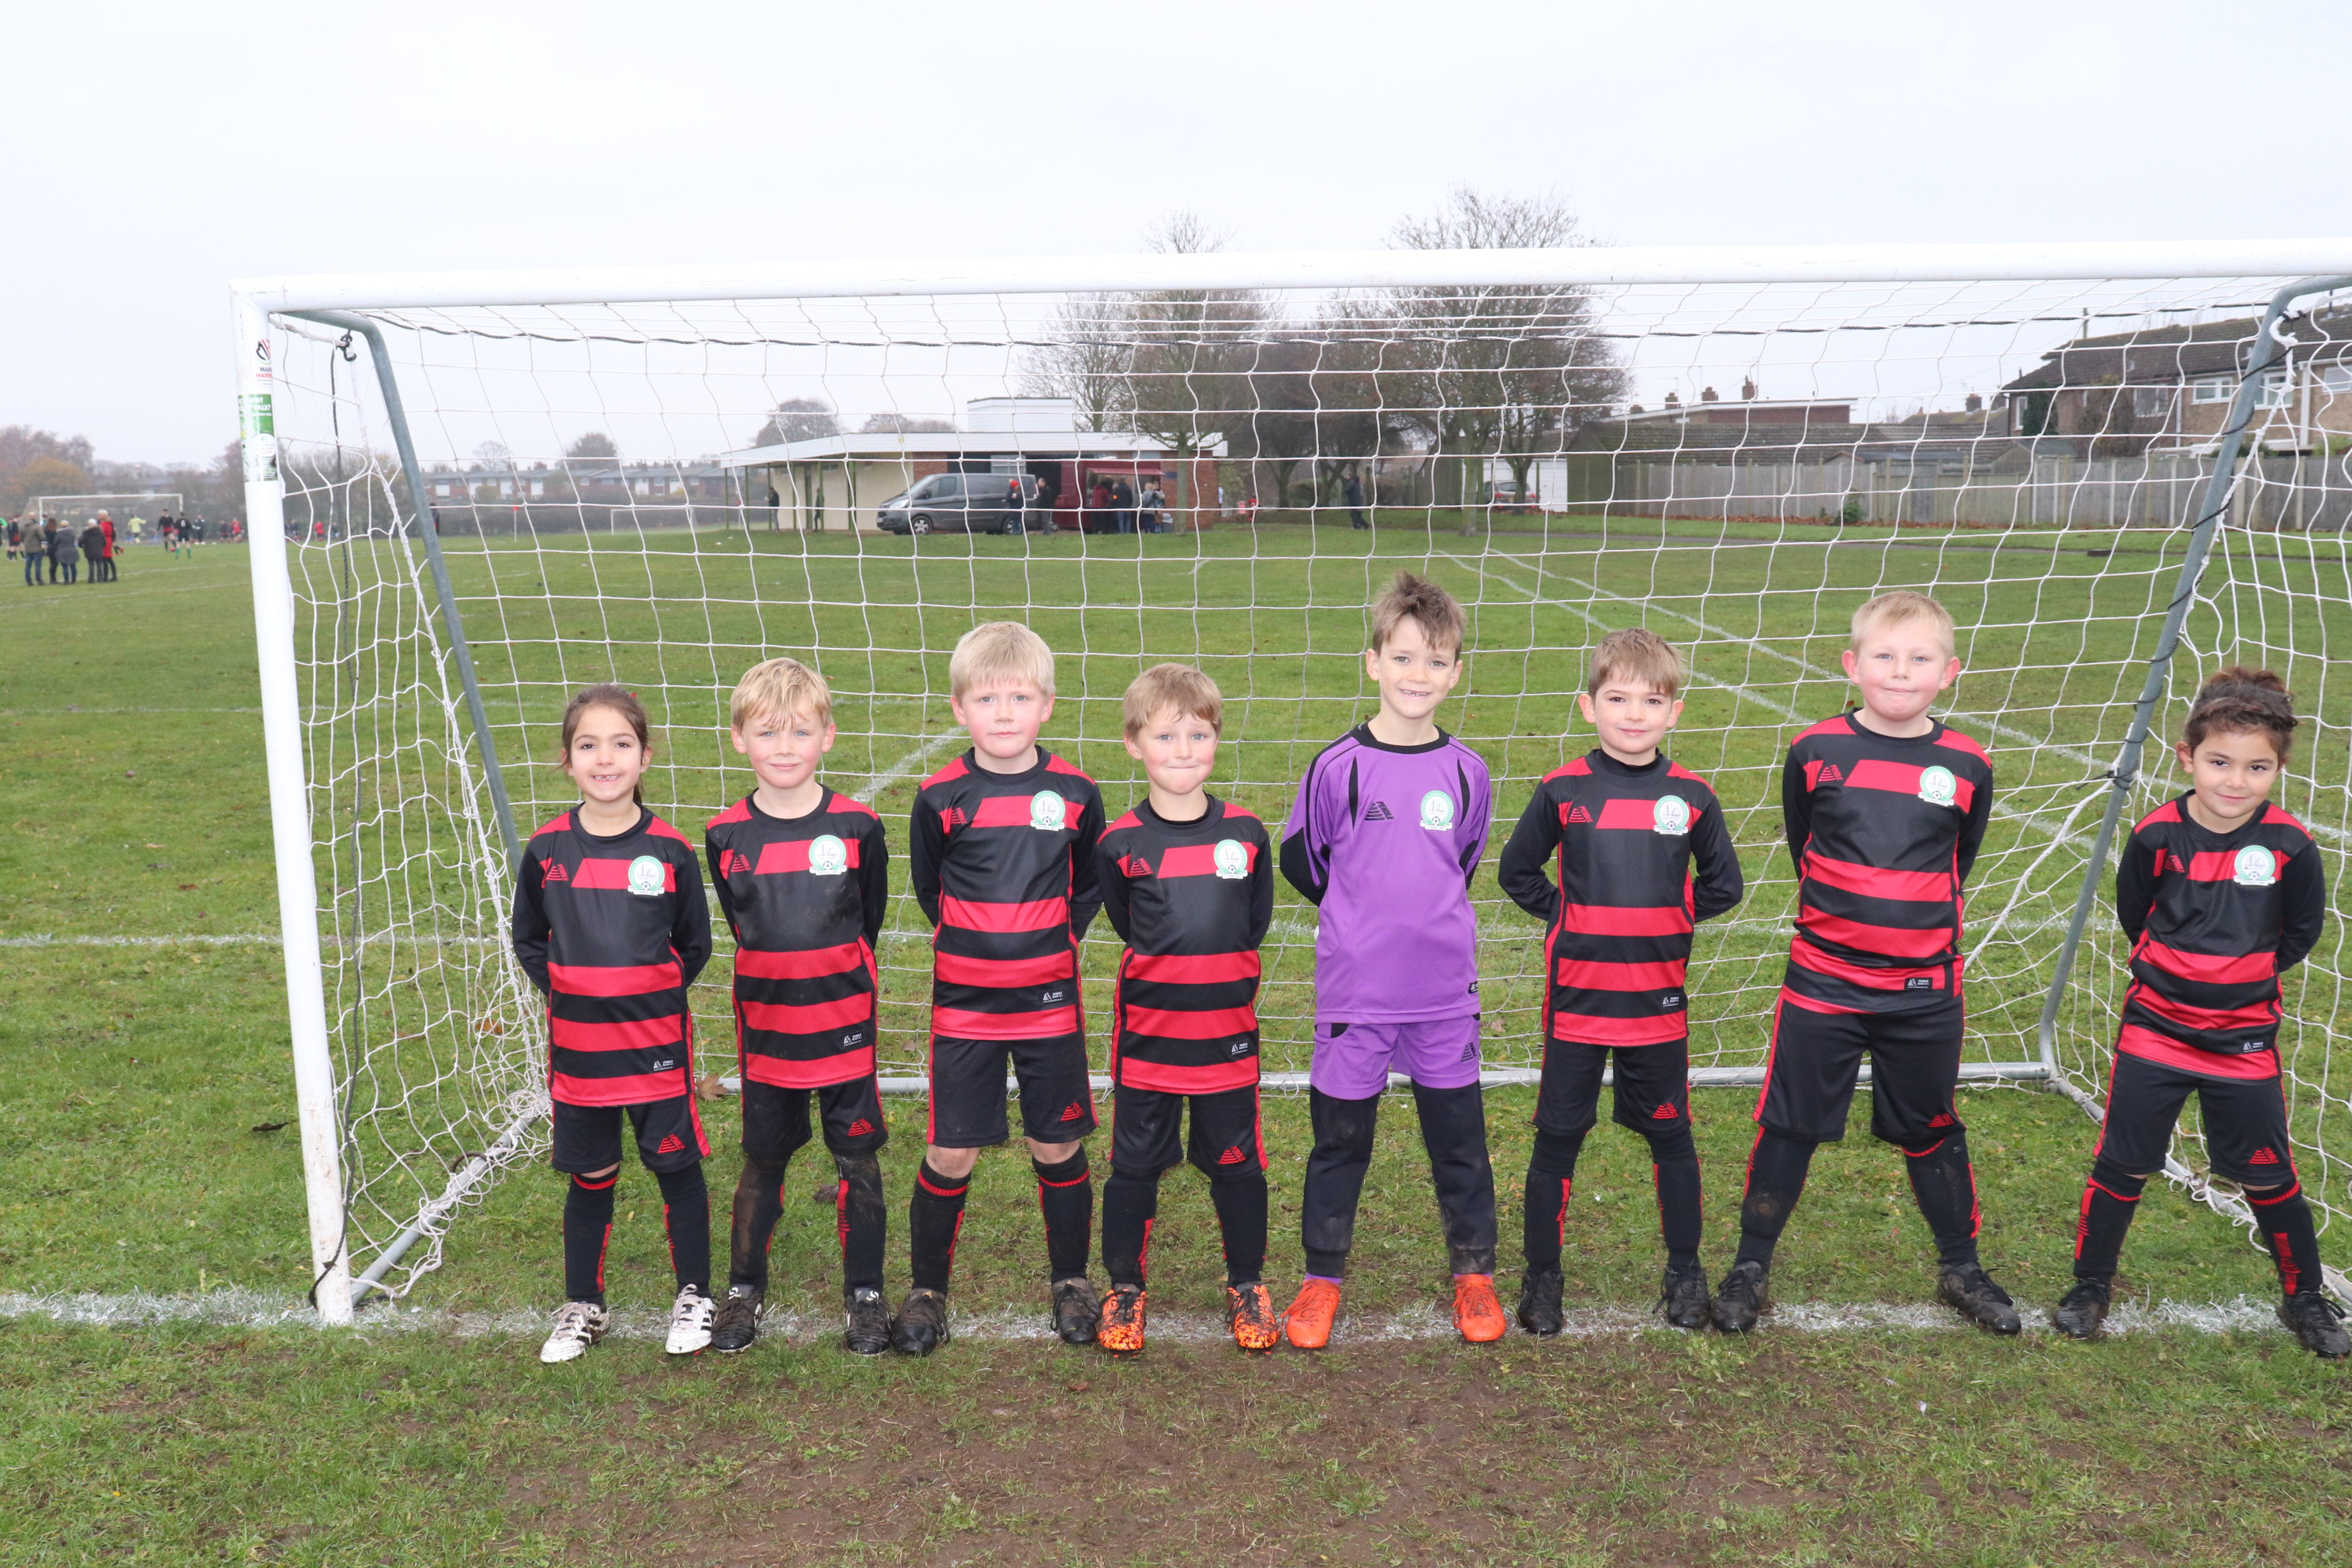 U7 Falcons team